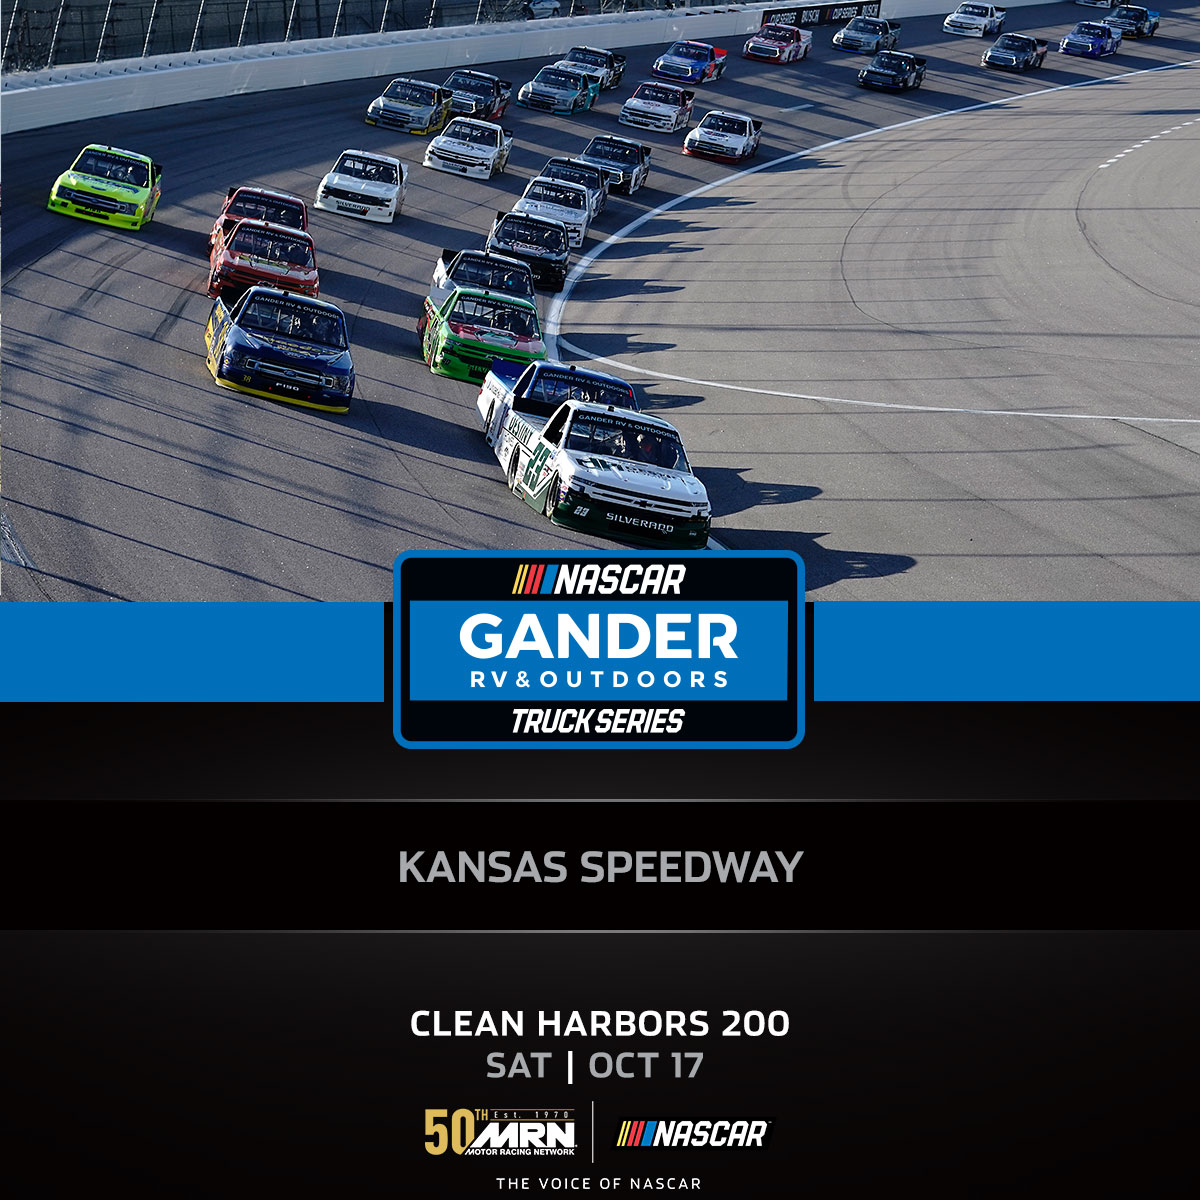 WE ARE LIVE @kansasspeedway for the #CleanHarbors200 📻: Local Affiliate: bit.ly/2MfJ5XI 💻: bit.ly/MRNbroadcast #NASCAR Mobile 📱:nas.cr/2qeyRNK @SIRIUSXM Channel 90 @REradioz Scanner: 454.000 #AskMRN | #NASCARPlayoffs